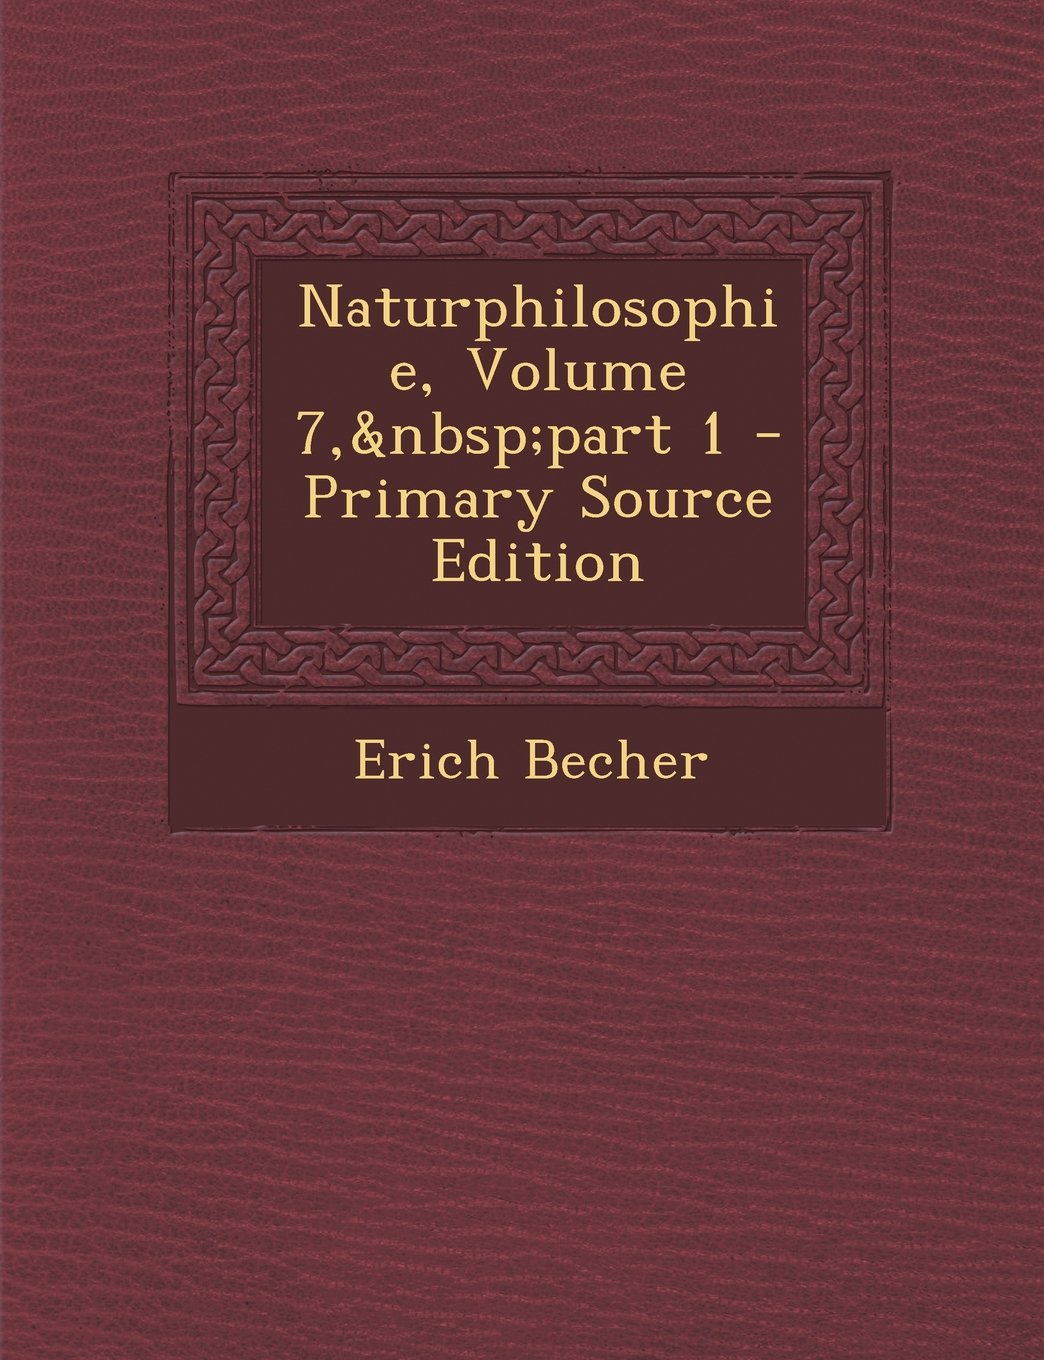 Download Naturphilosophie, Volume 7, part 1 - Primary Source Edition (German Edition) PDF